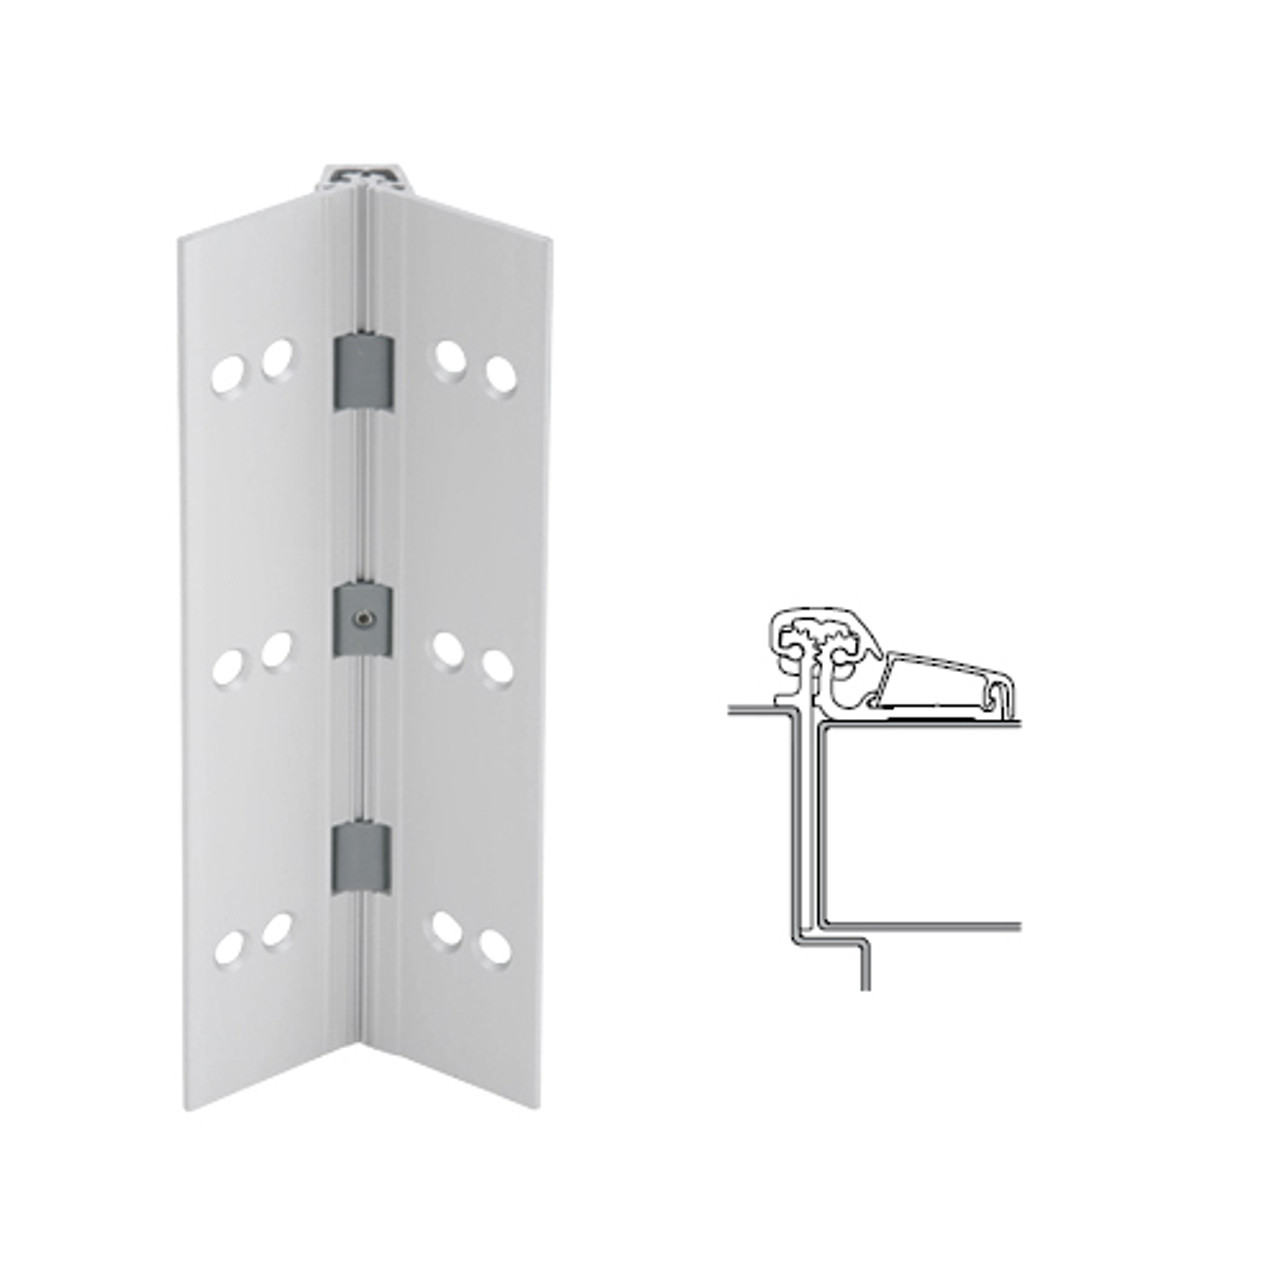 054XY-US28-95-TF IVES Adjustable Half Surface Continuous Geared Hinges with Thread Forming Screws in Satin Aluminum